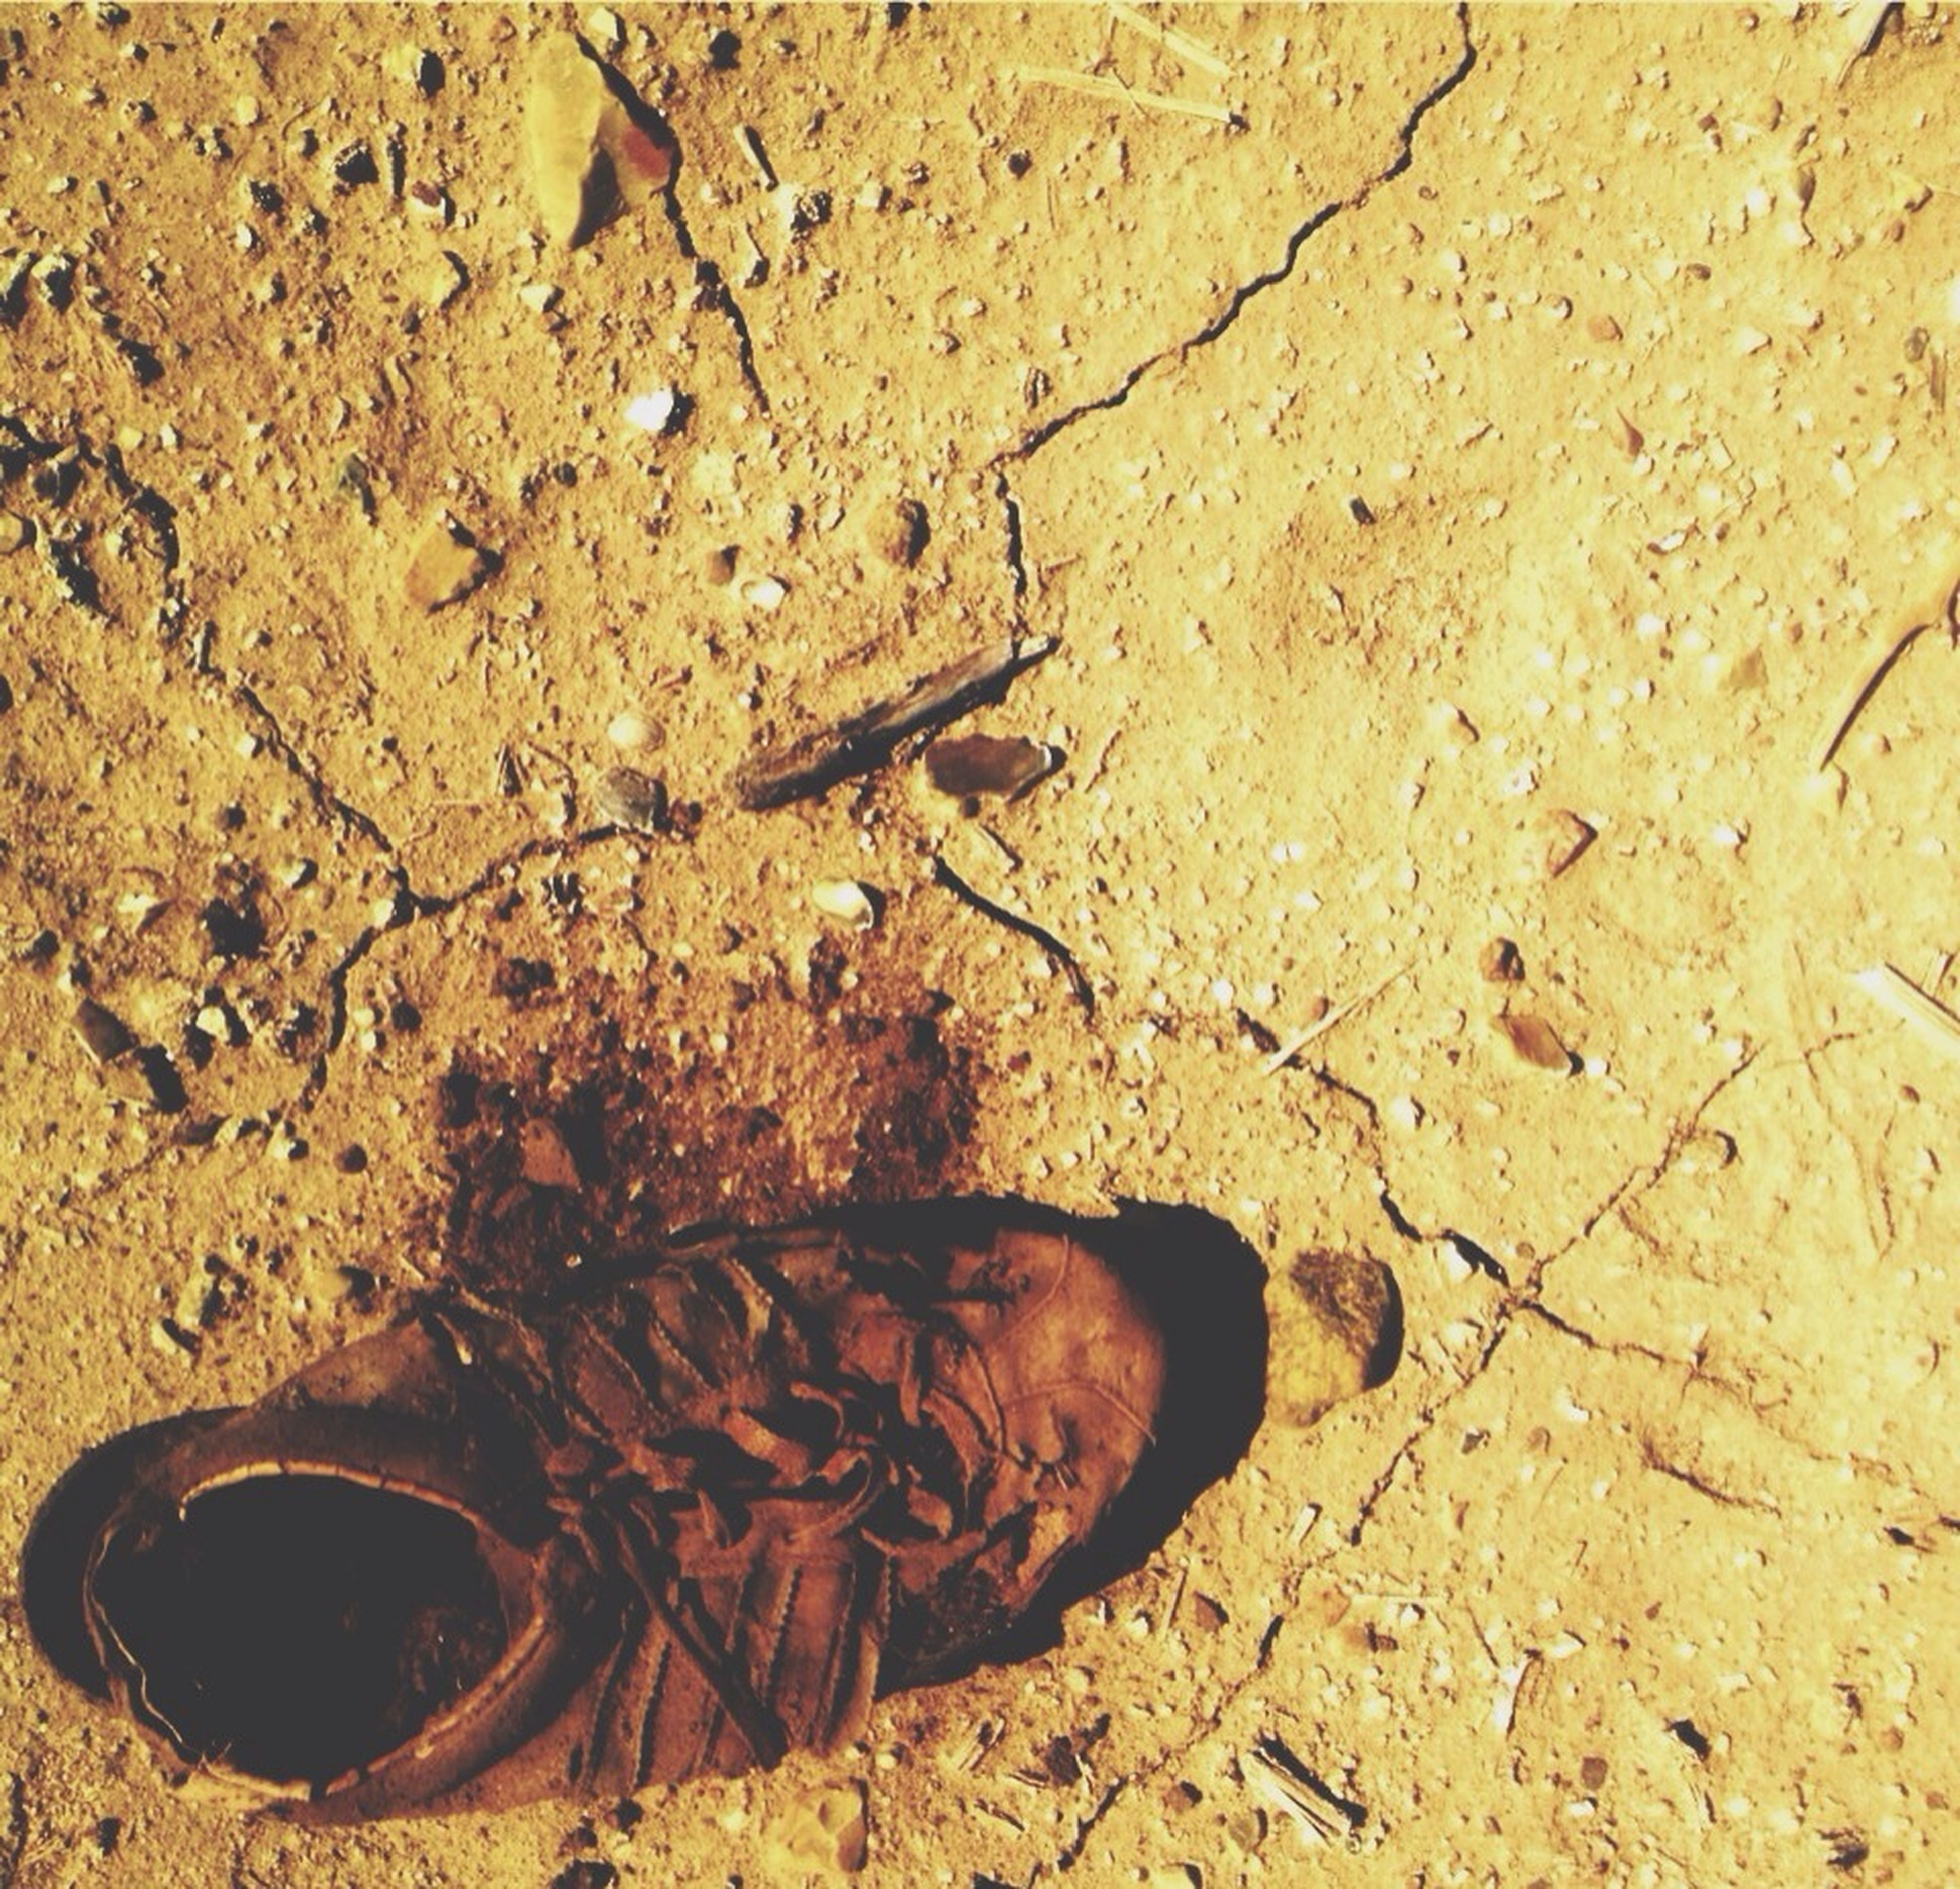 high angle view, sand, beach, abandoned, close-up, still life, ground, dirt, day, outdoors, textured, no people, sunlight, dirty, messy, directly above, damaged, shadow, dry, nature